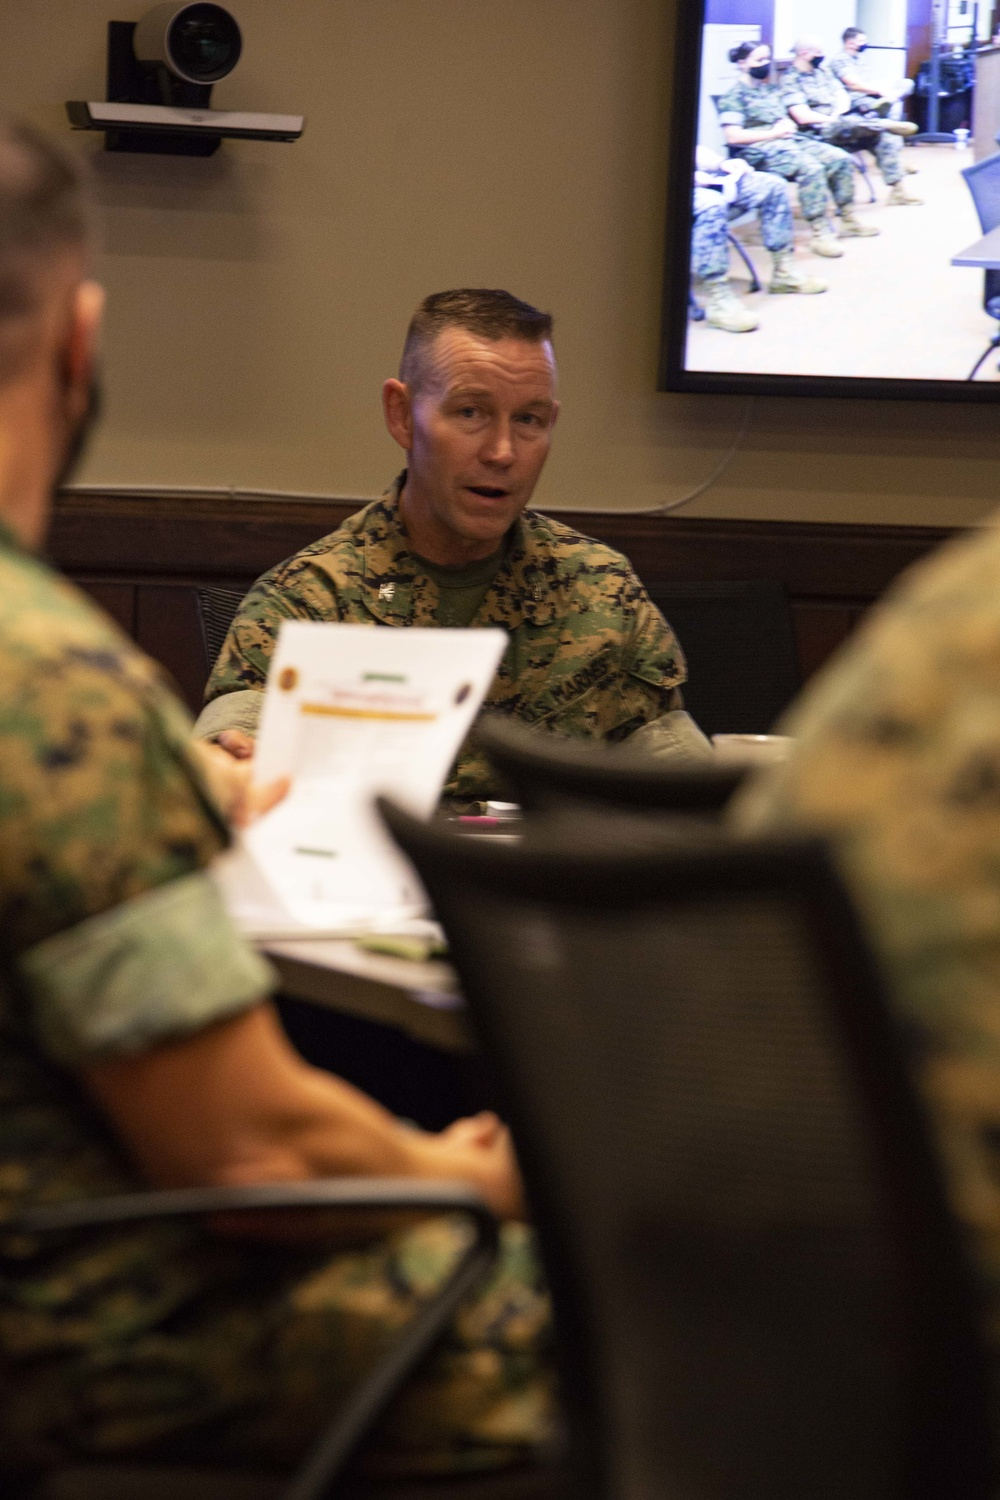 MCSFR Commander Conference Meeting